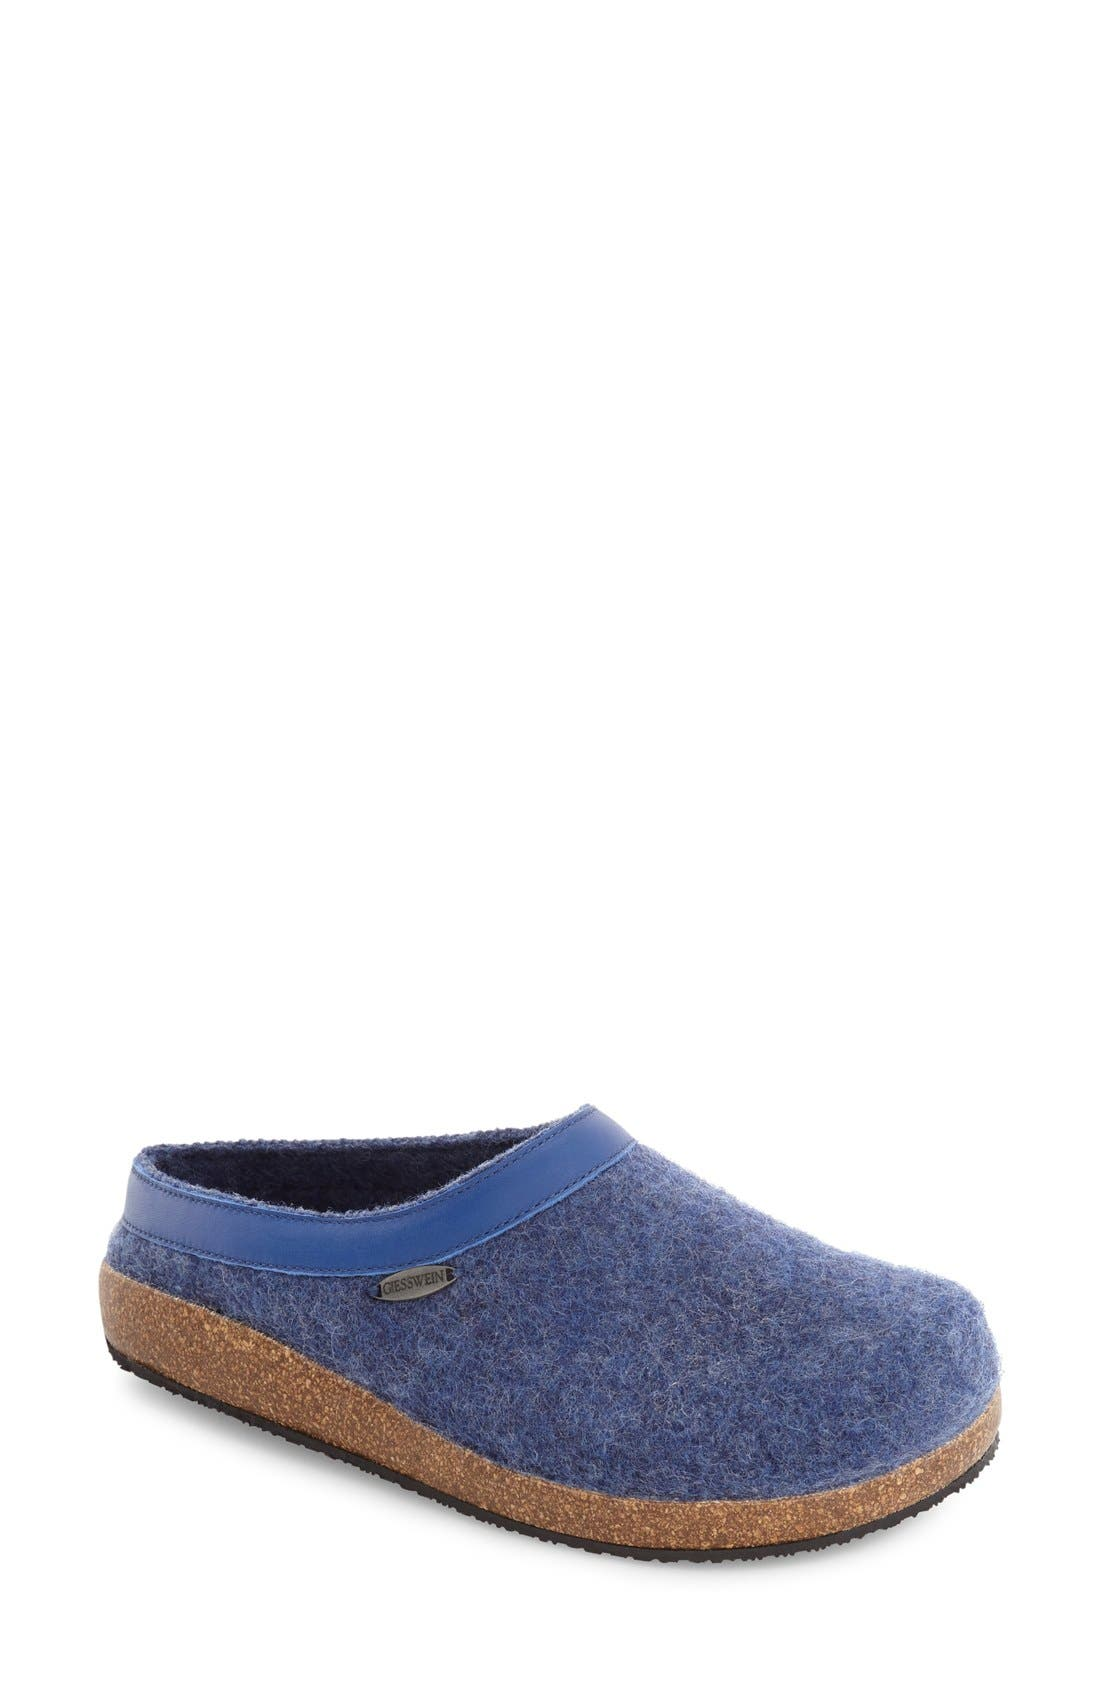 GIESSWEIN Acadia Water Repellent Slipper